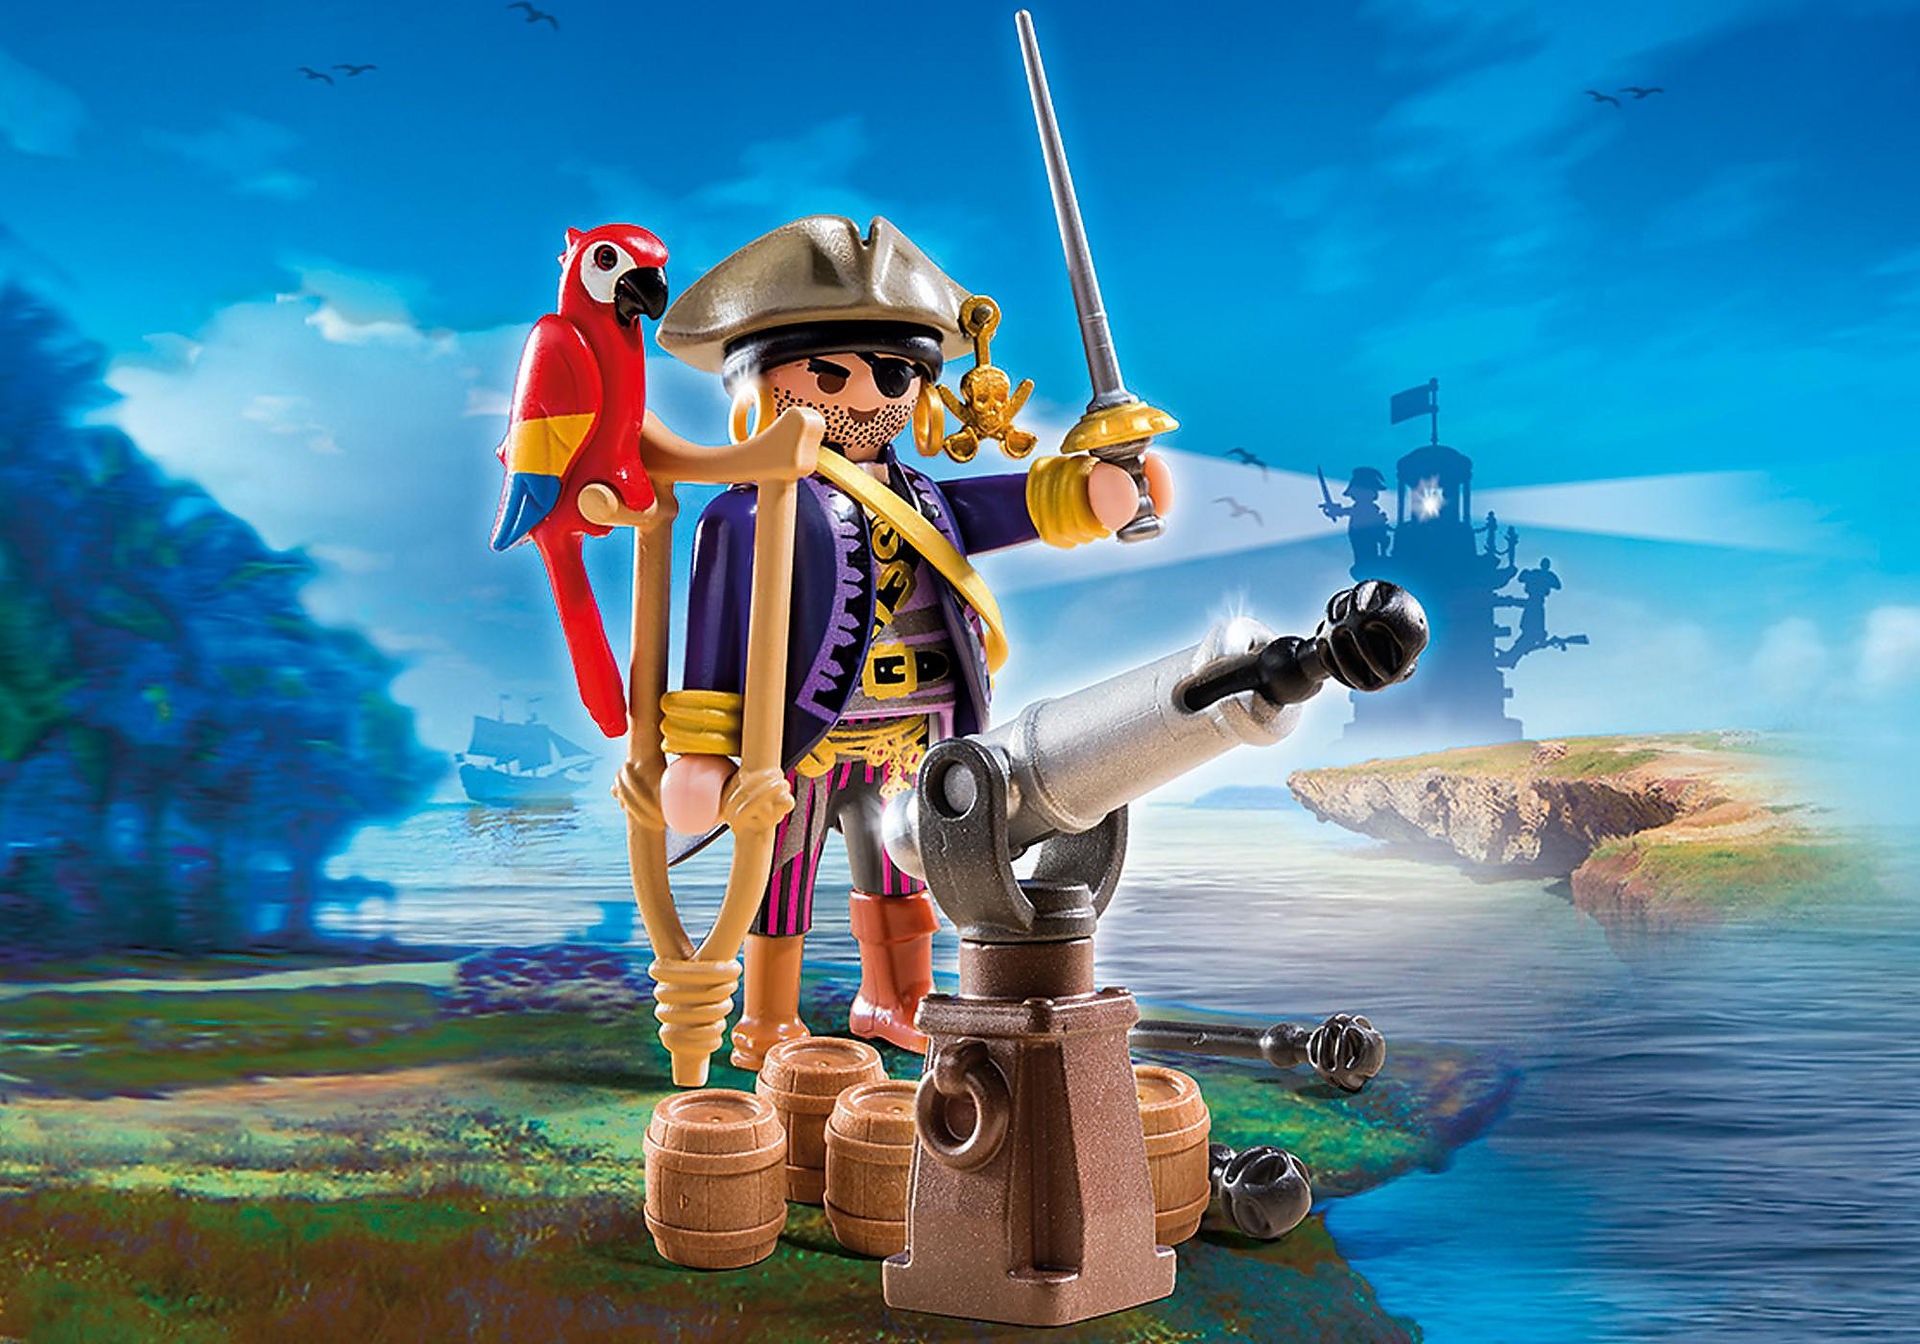 http://media.playmobil.com/i/playmobil/6684_product_detail/Pirate Captain